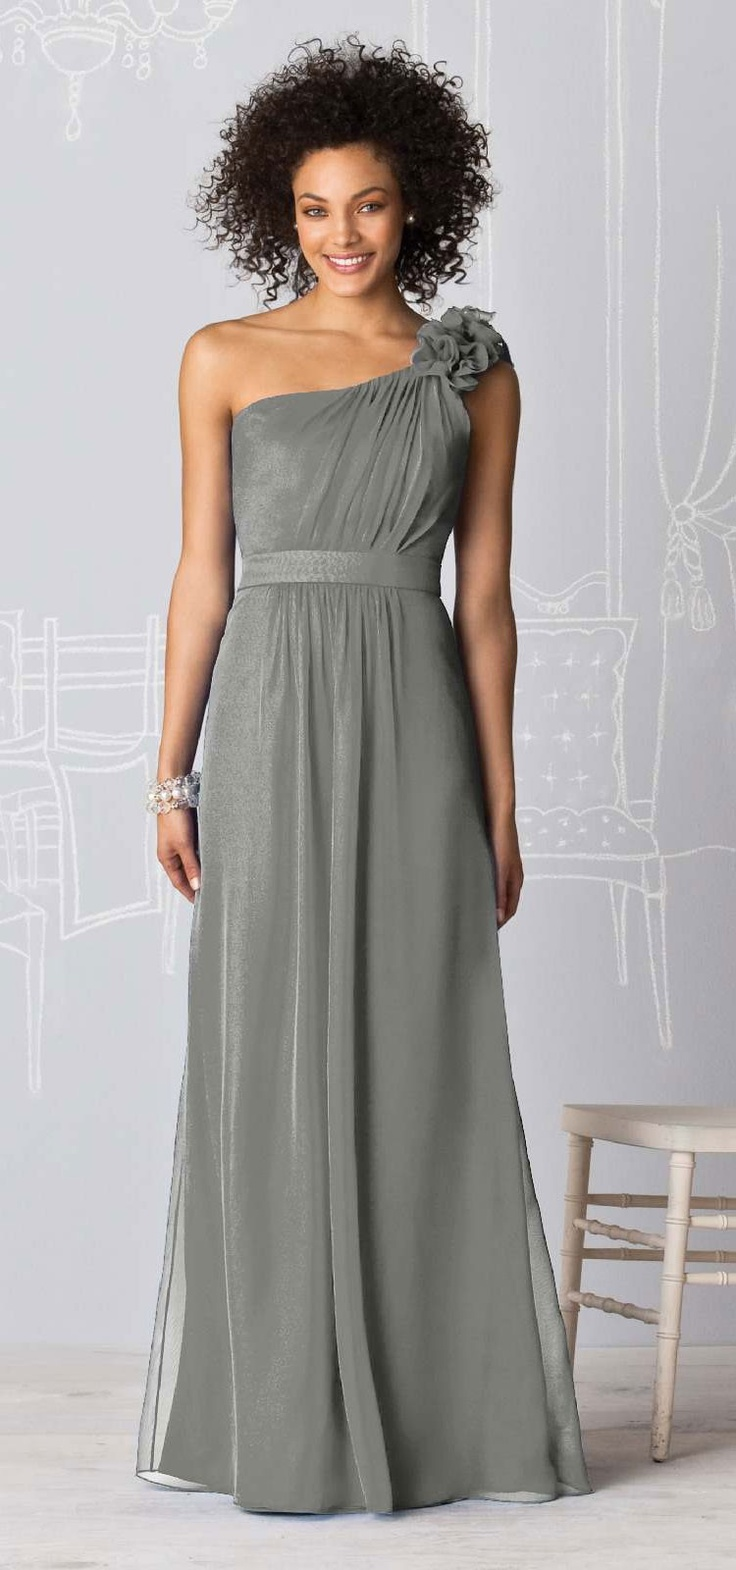 8 best bridesmaid big girls images on pinterest gray bridesmaids ombrellifo Gallery